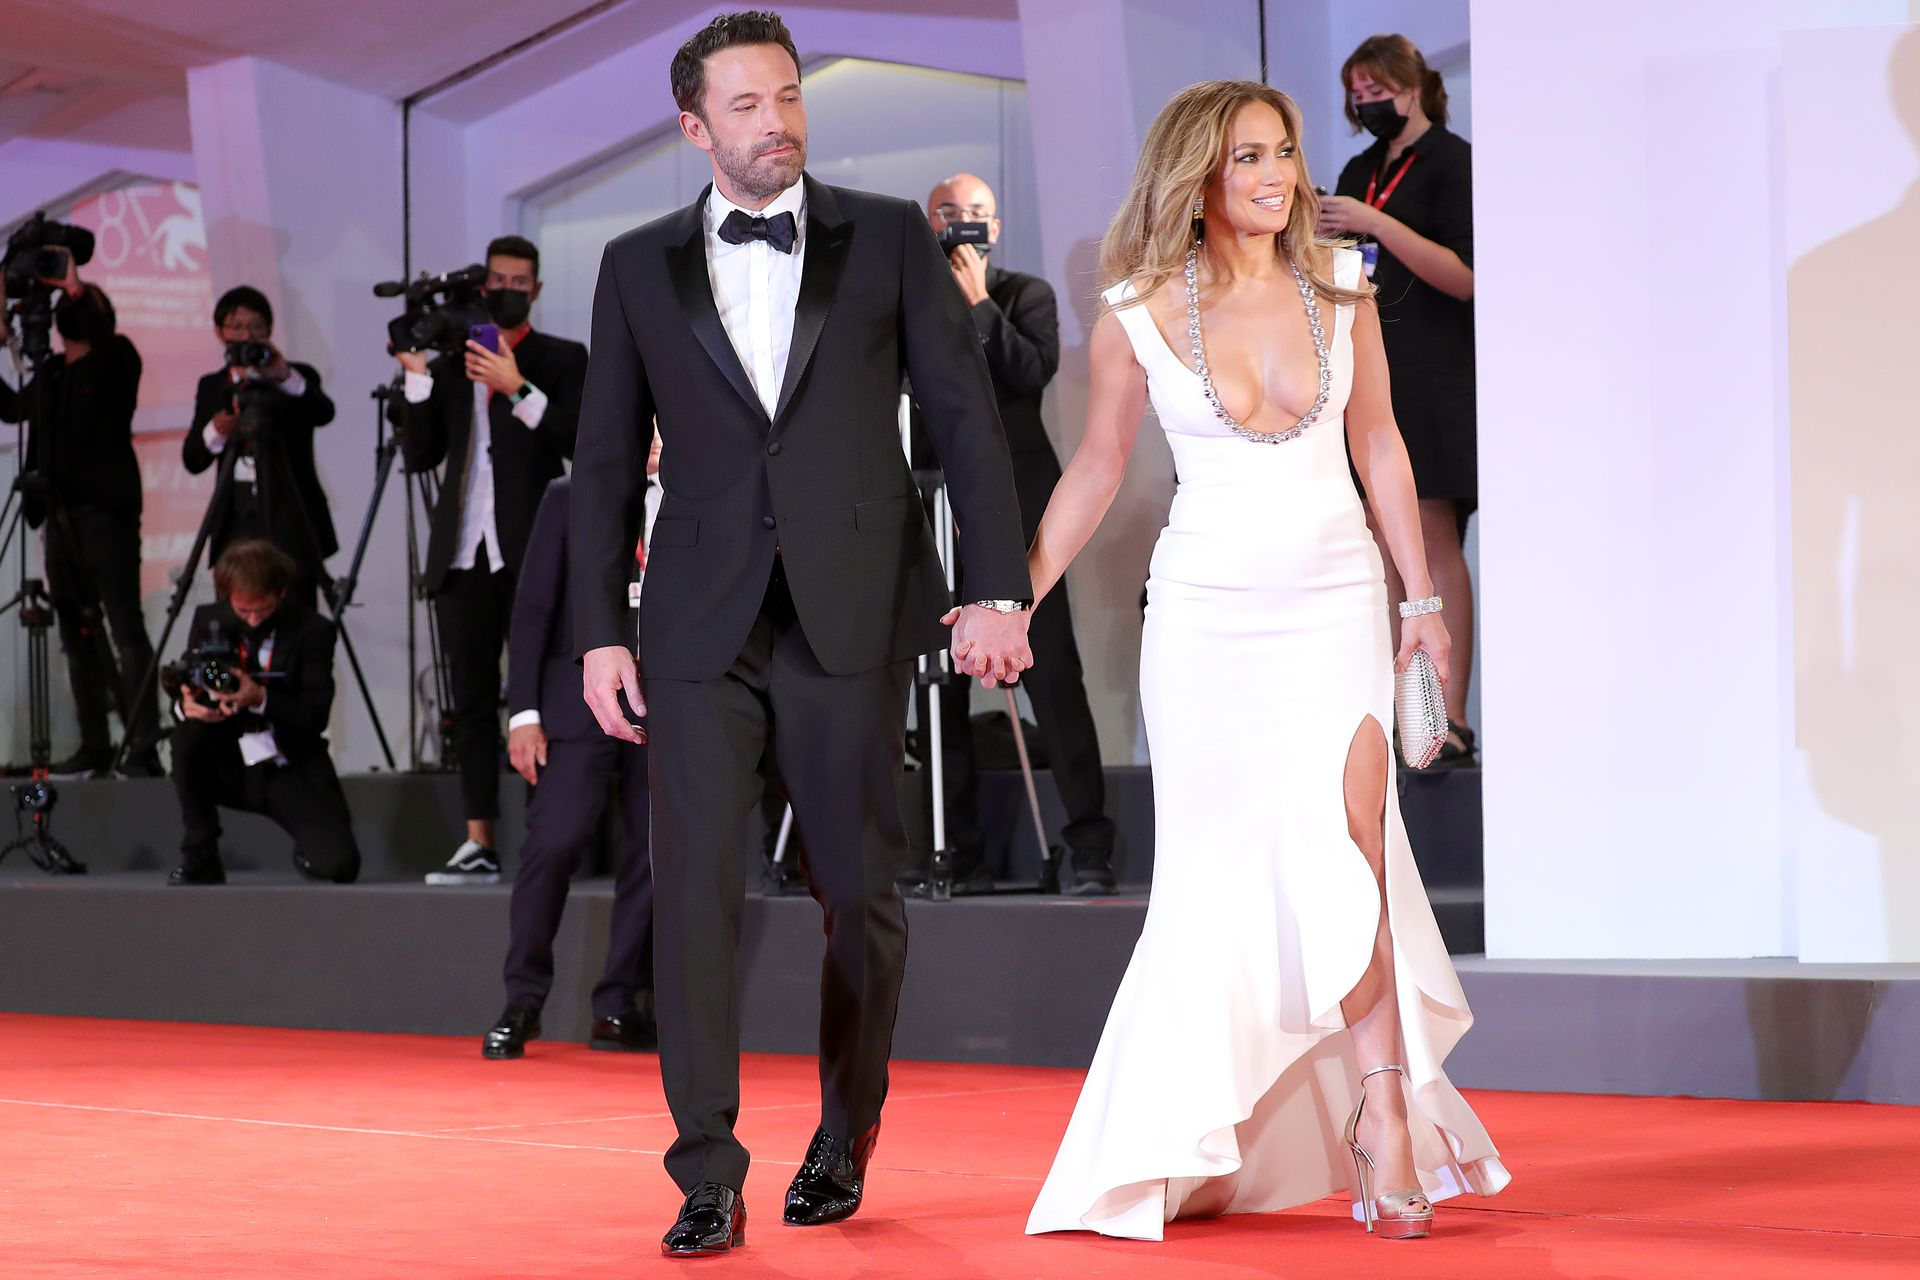 Jennifer Lopez and Ben Affleck are greeted by fans at the Venice Festival